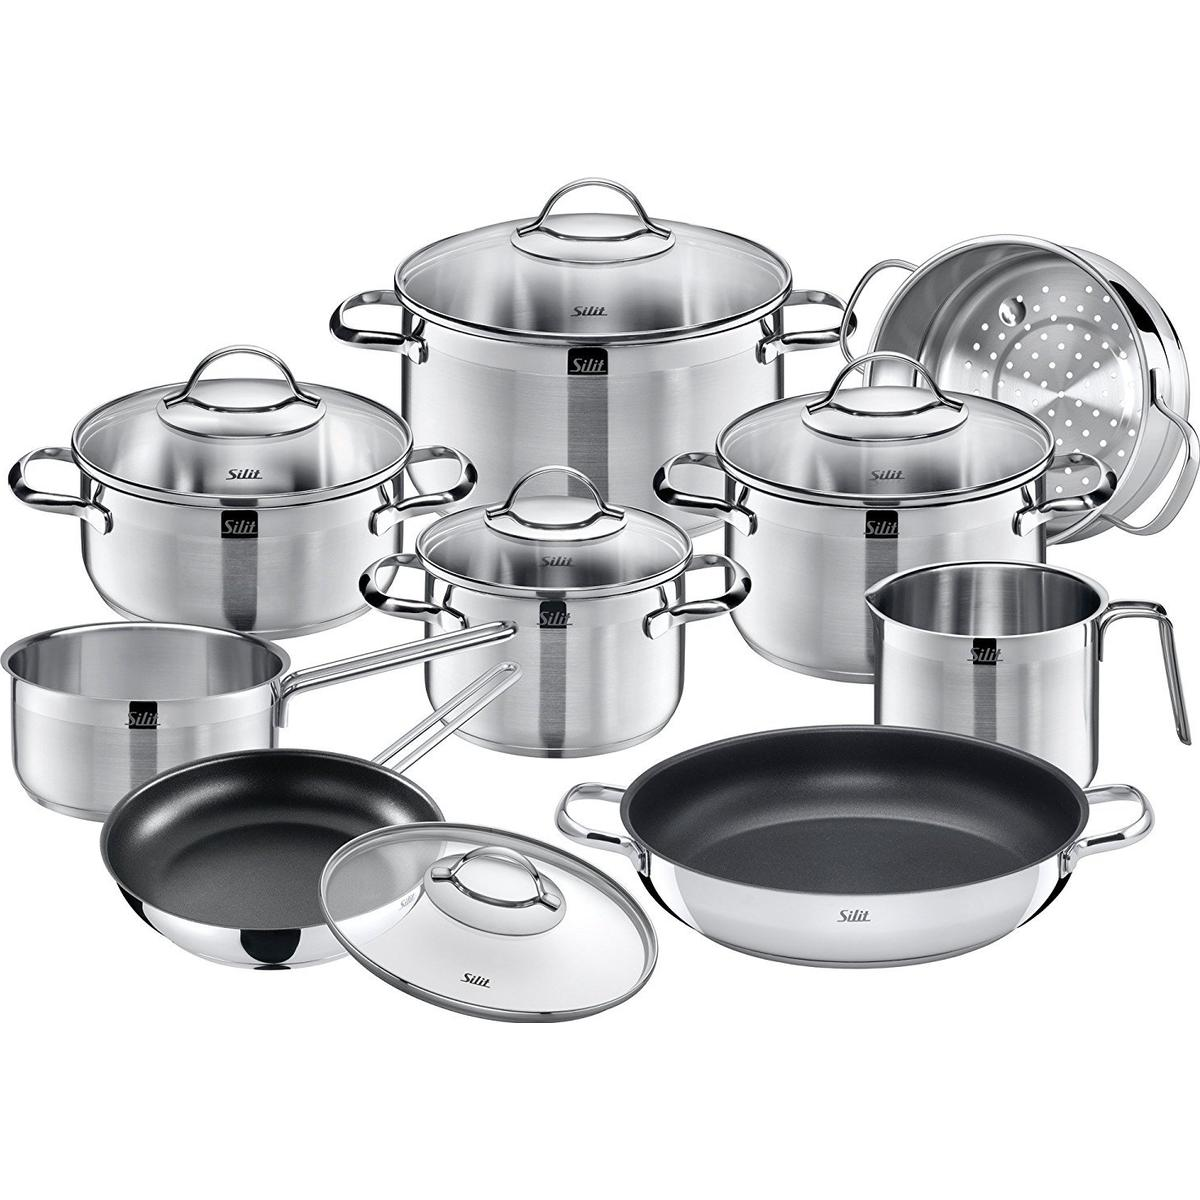 Compare best Silit Cookware prices on the market - PriceRunner